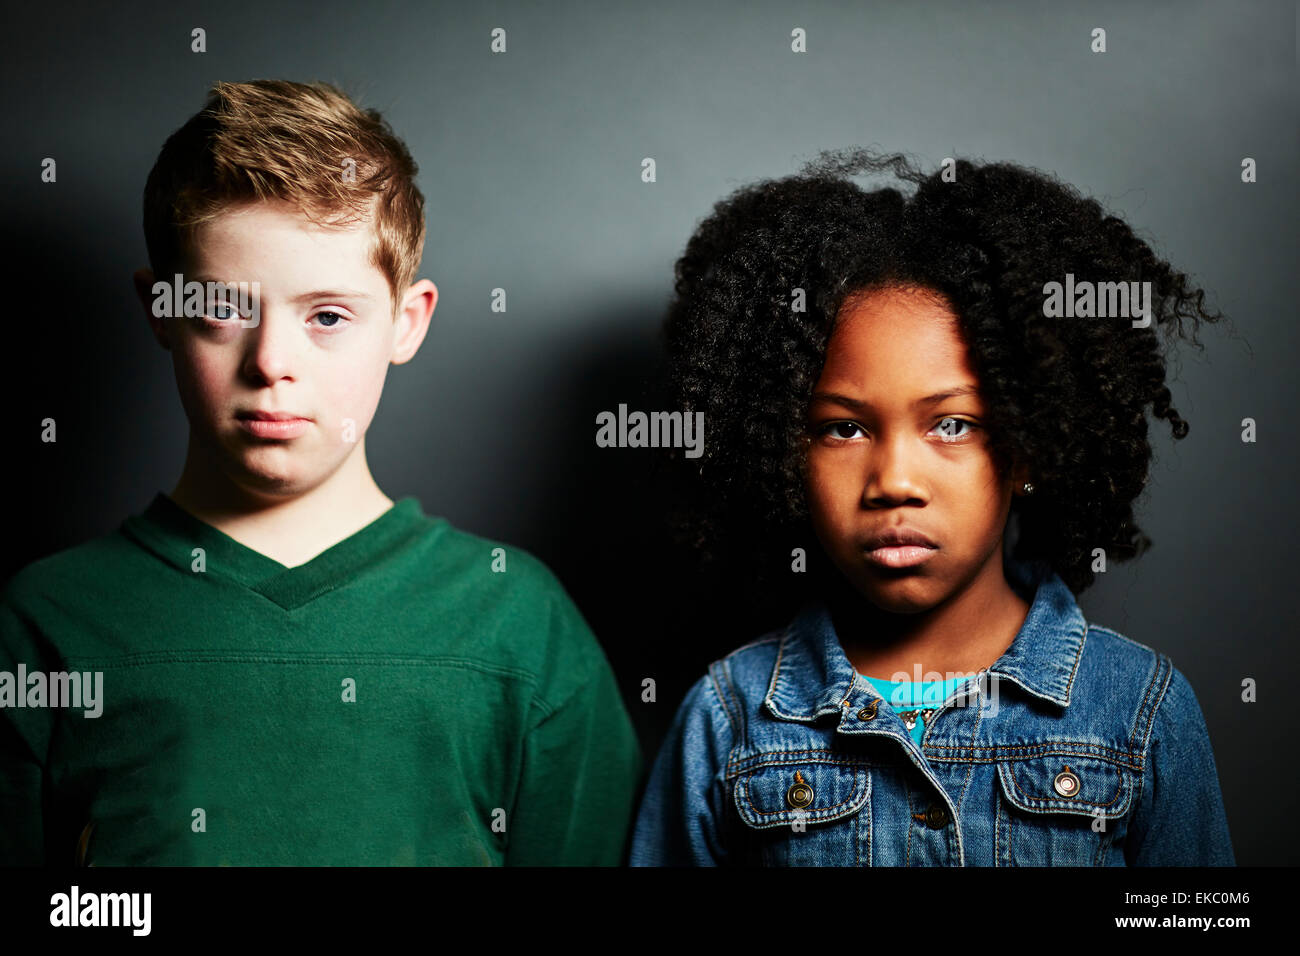 Portrait of a boy and girl looking serious - Stock Image